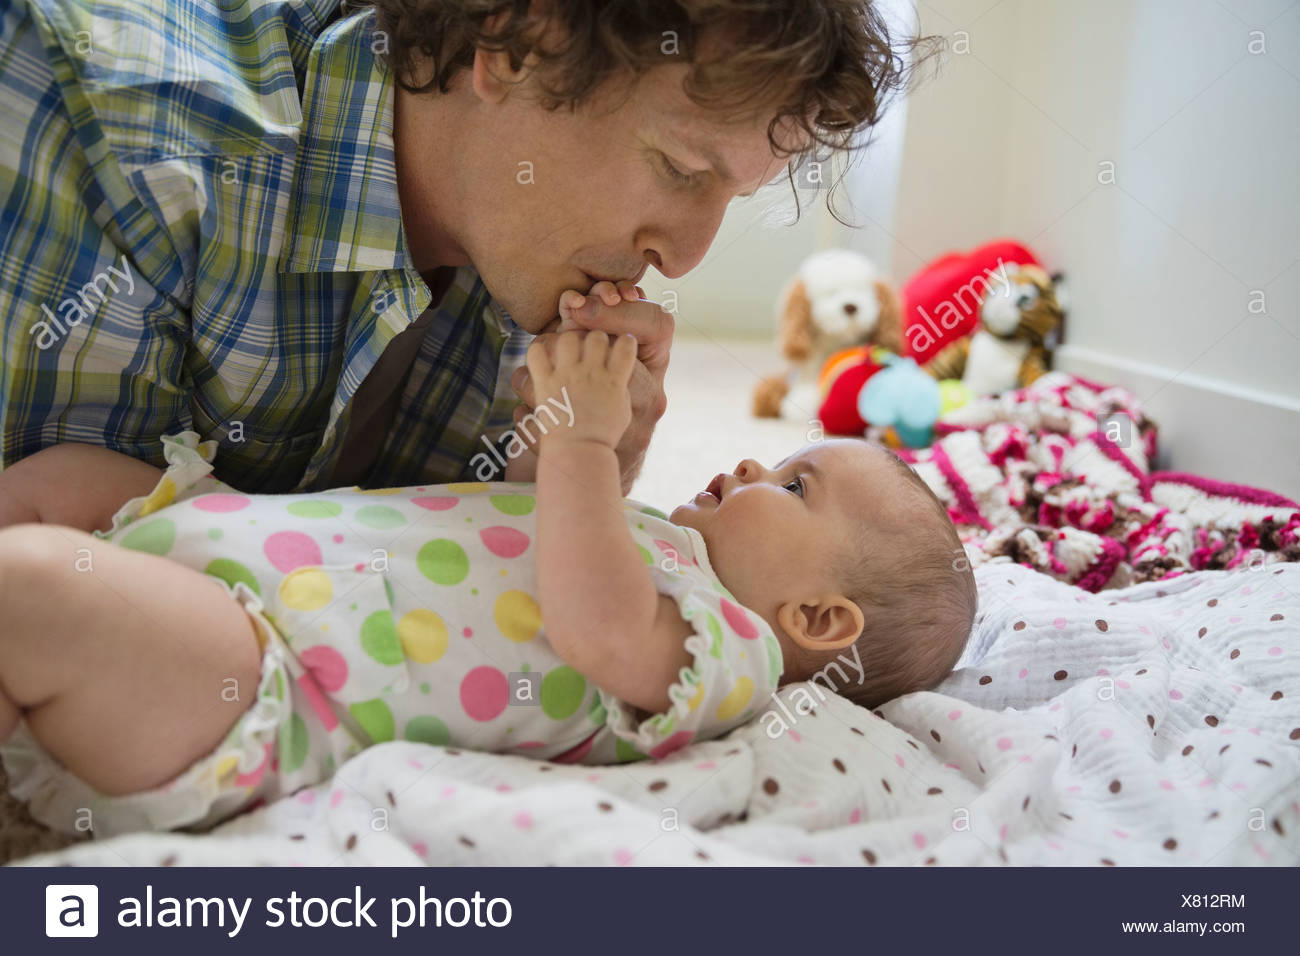 baby girls stock photos & baby girls stock images - alamy